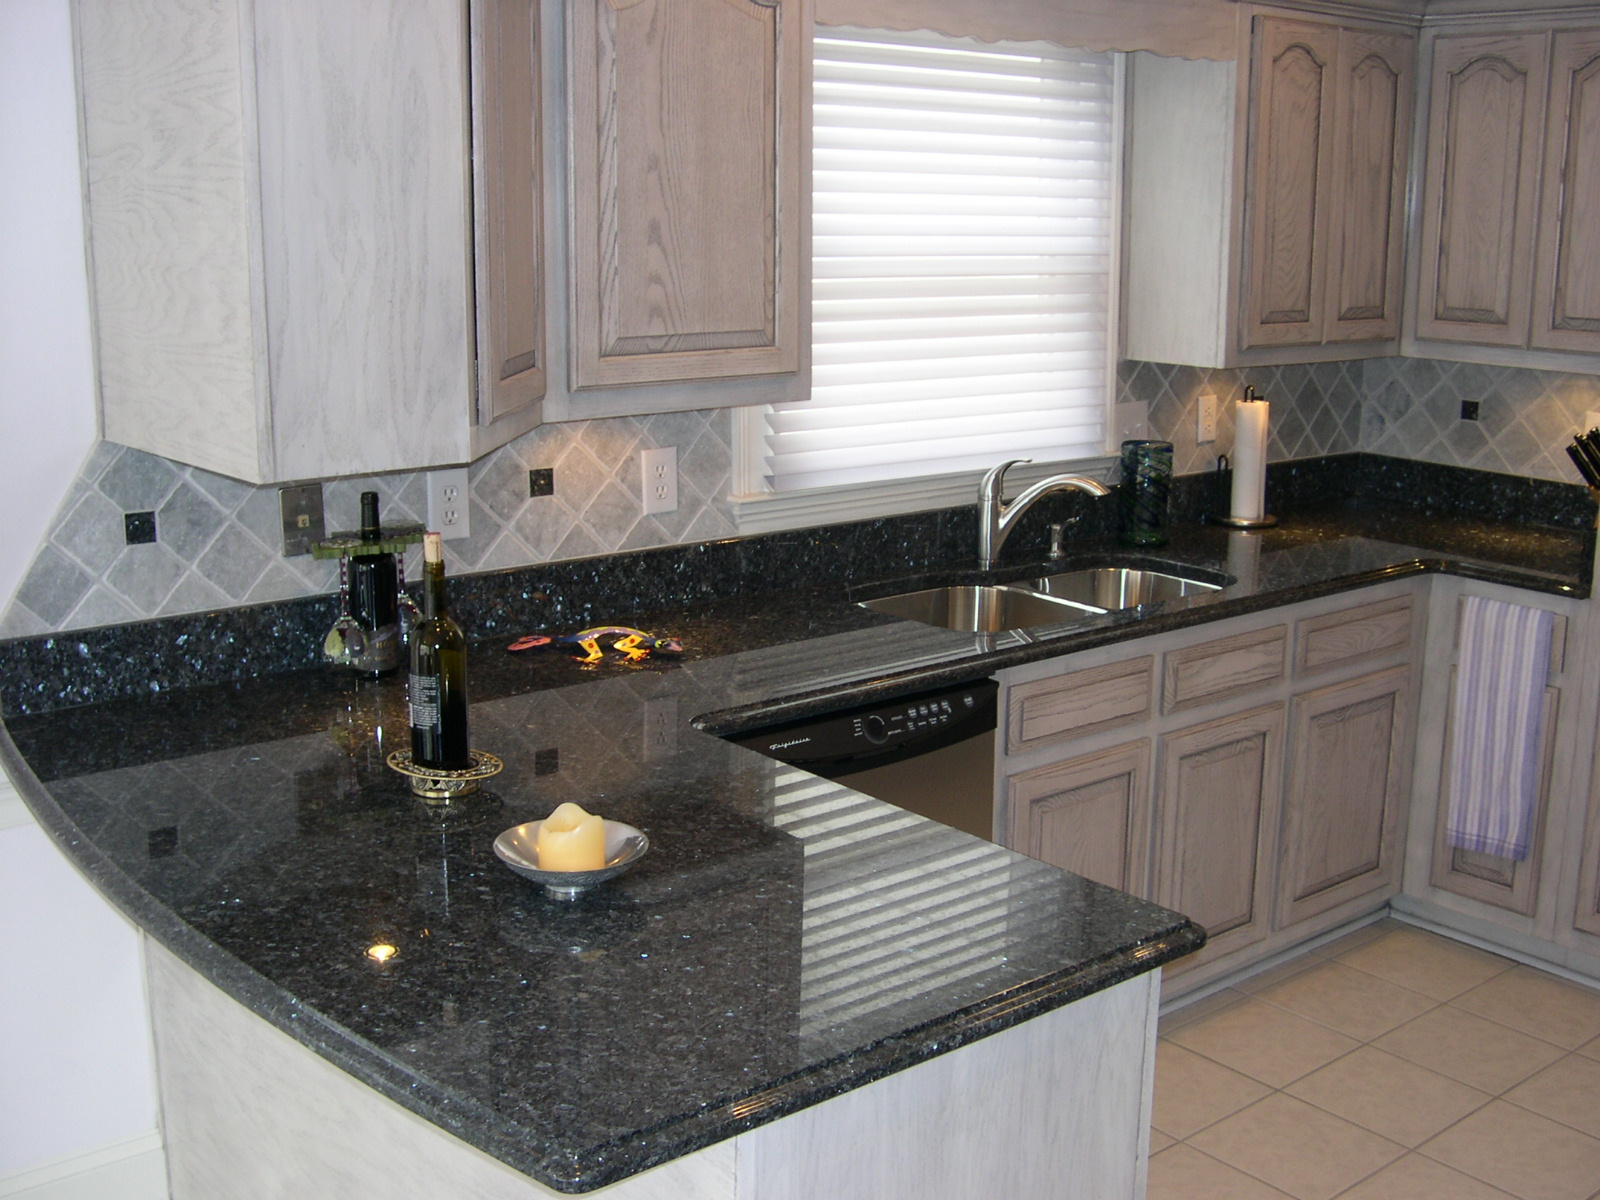 Crowe Counters At Granite Countertop Warehouse Acworth Ga 30101 Angies List